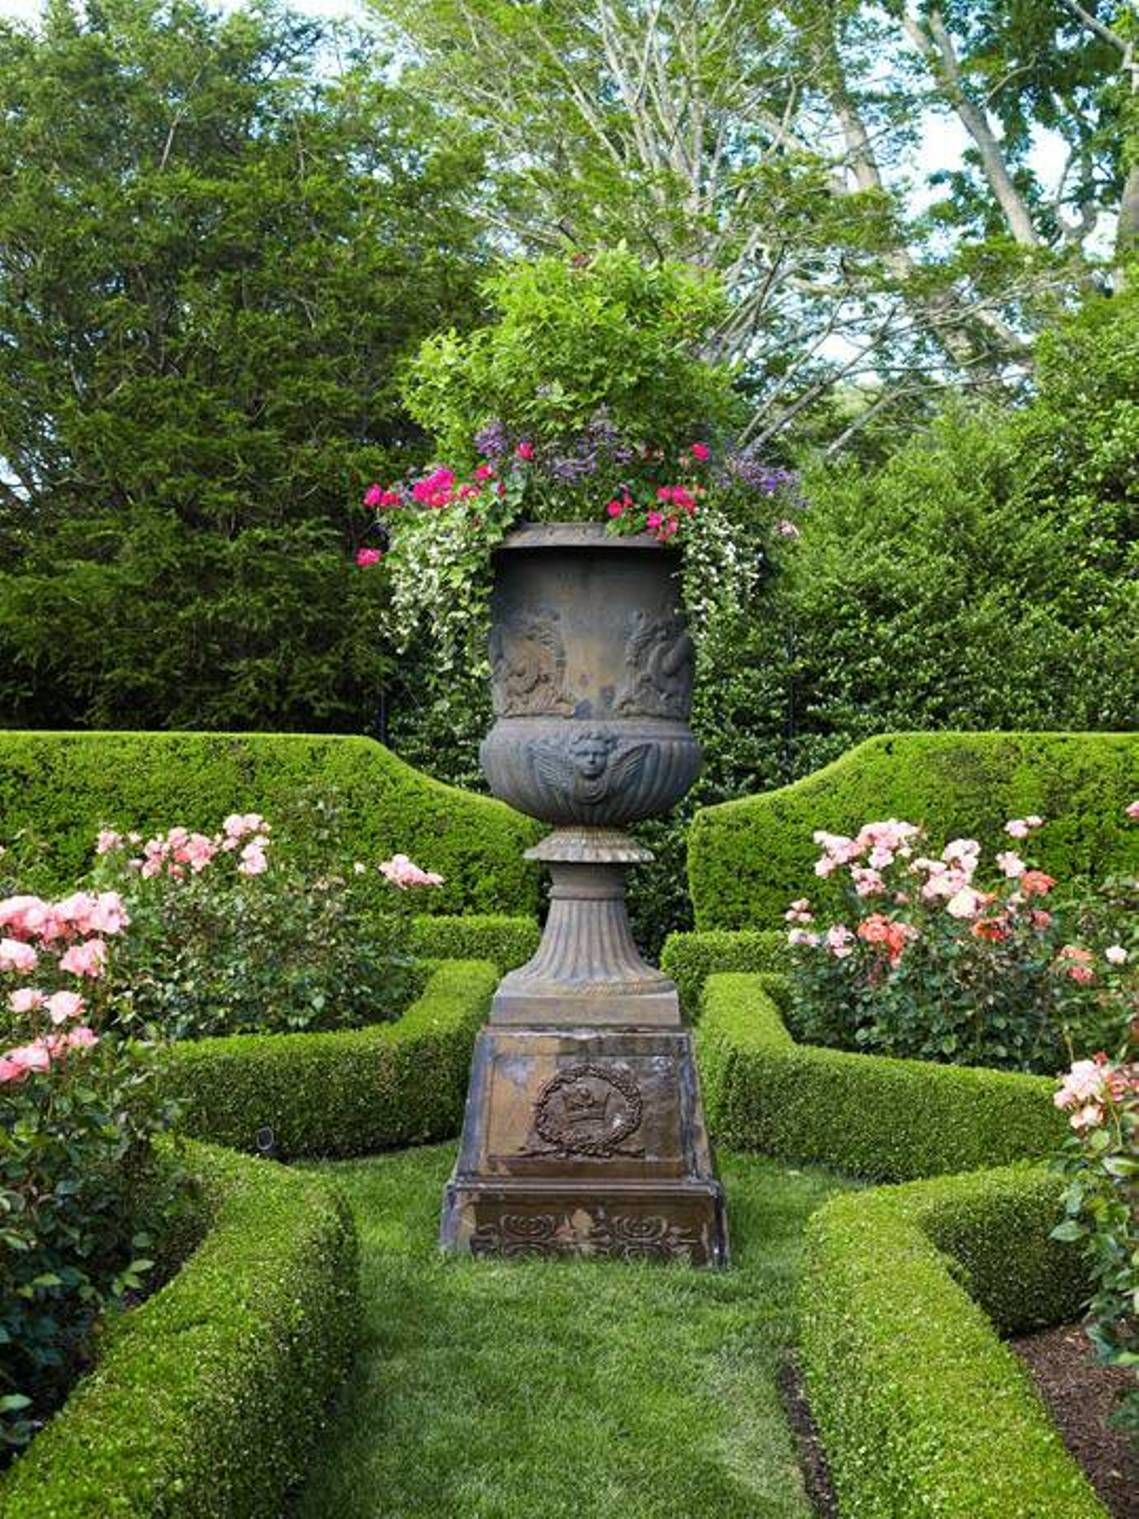 Large Urns For Decoration Pleasing Garden And Lawn  Garden Decorating Ideas With Urns  Garden Decorating Design